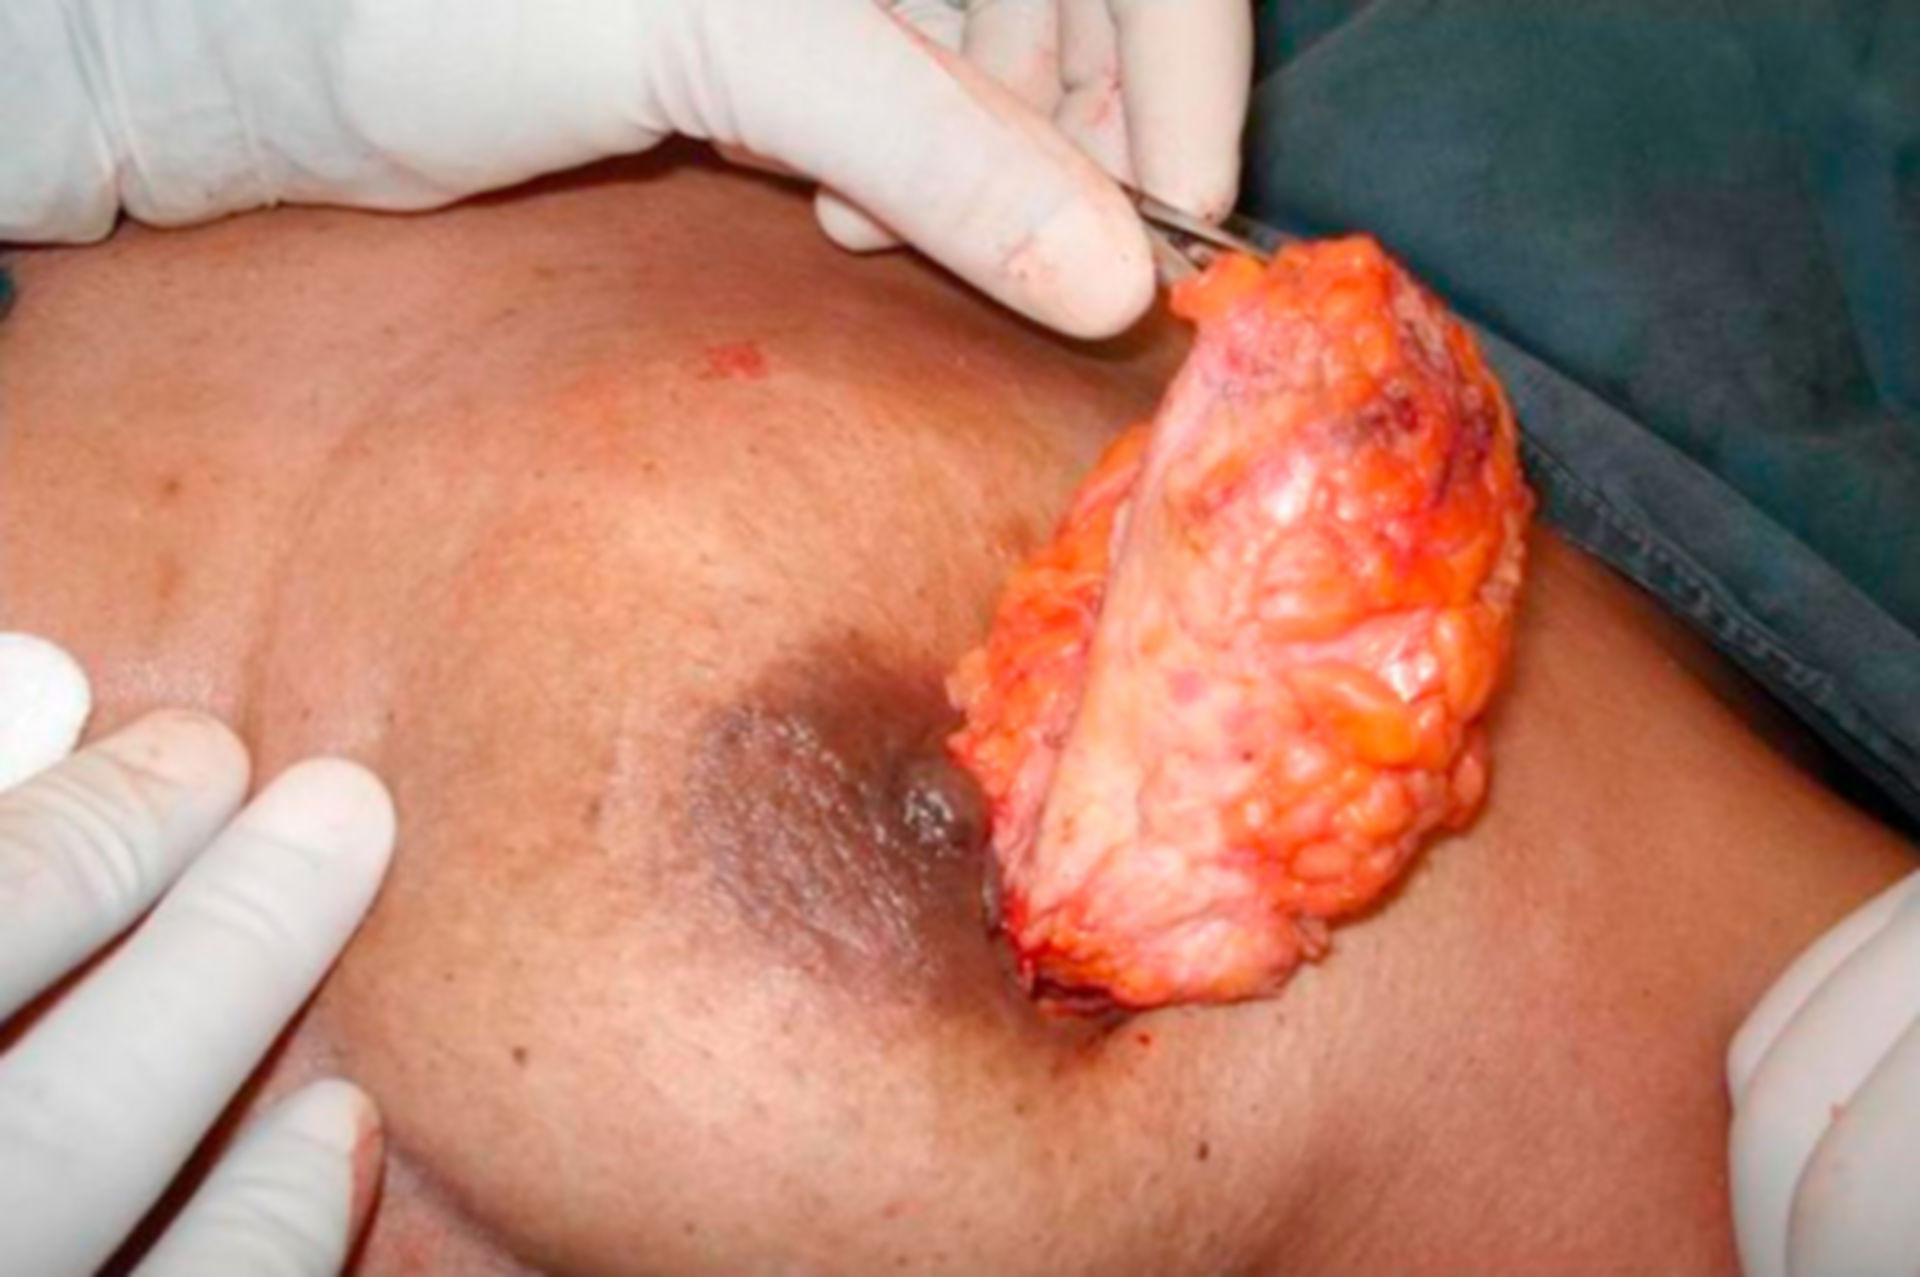 Excision of the upper inner quadrant lesion by a circum-areolar incision